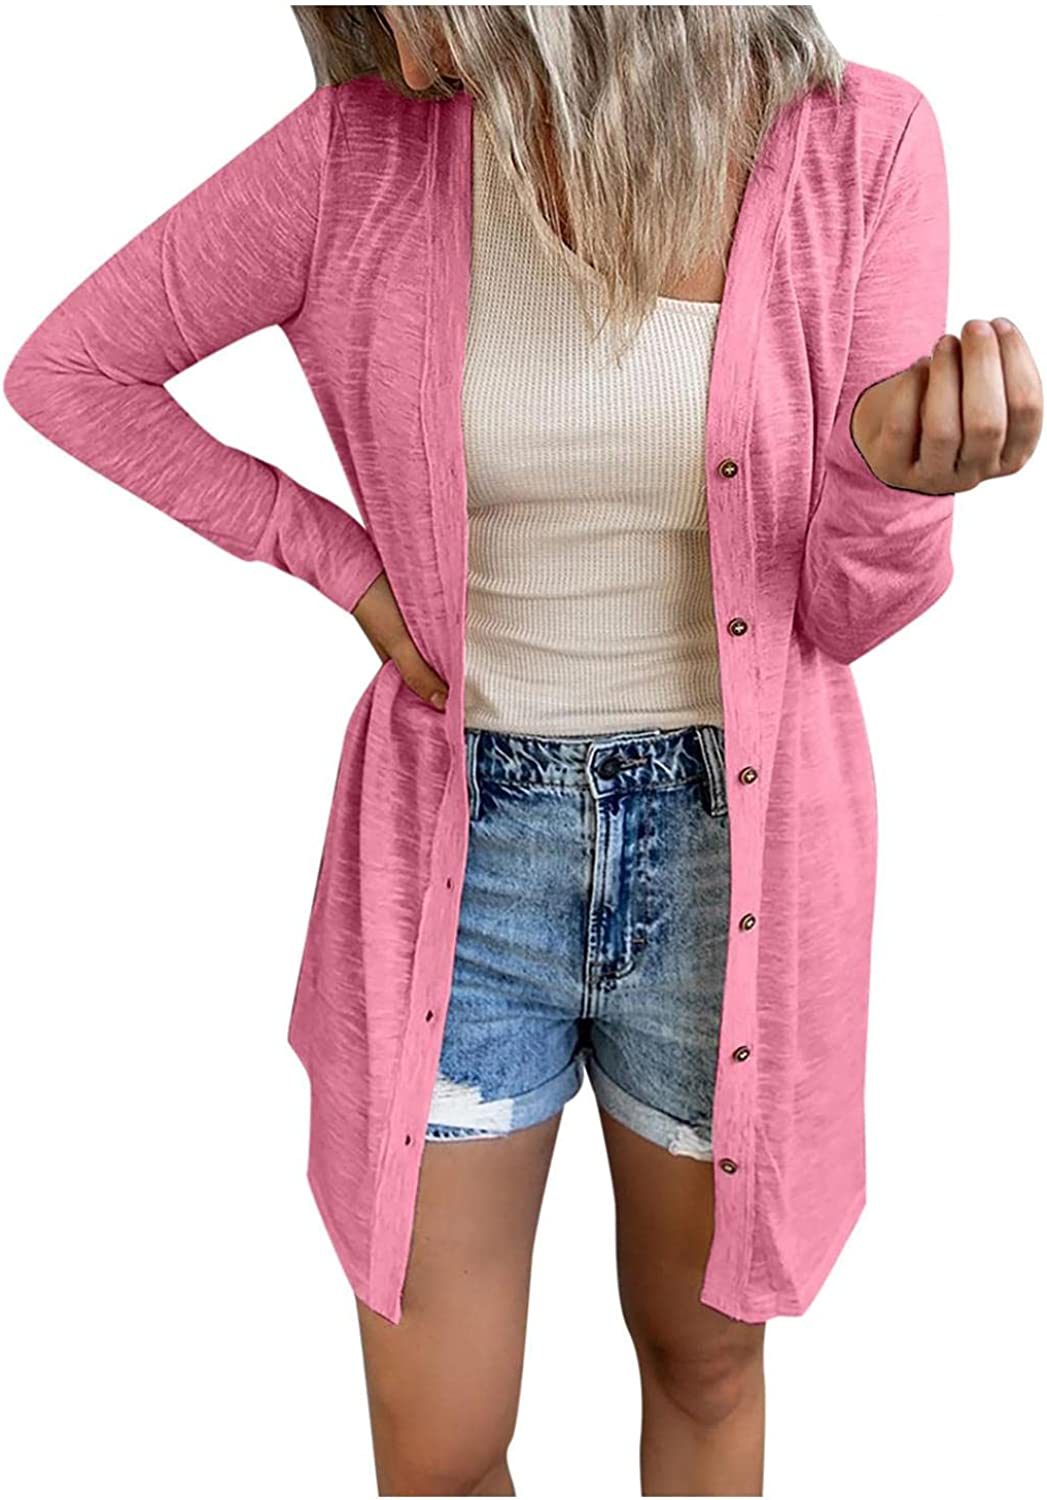 Cardigan for Women, Womens Open Front Cardigans Sleeve Shawl Collared Lightweight Cape Waffle Knit Slouchy Cloak